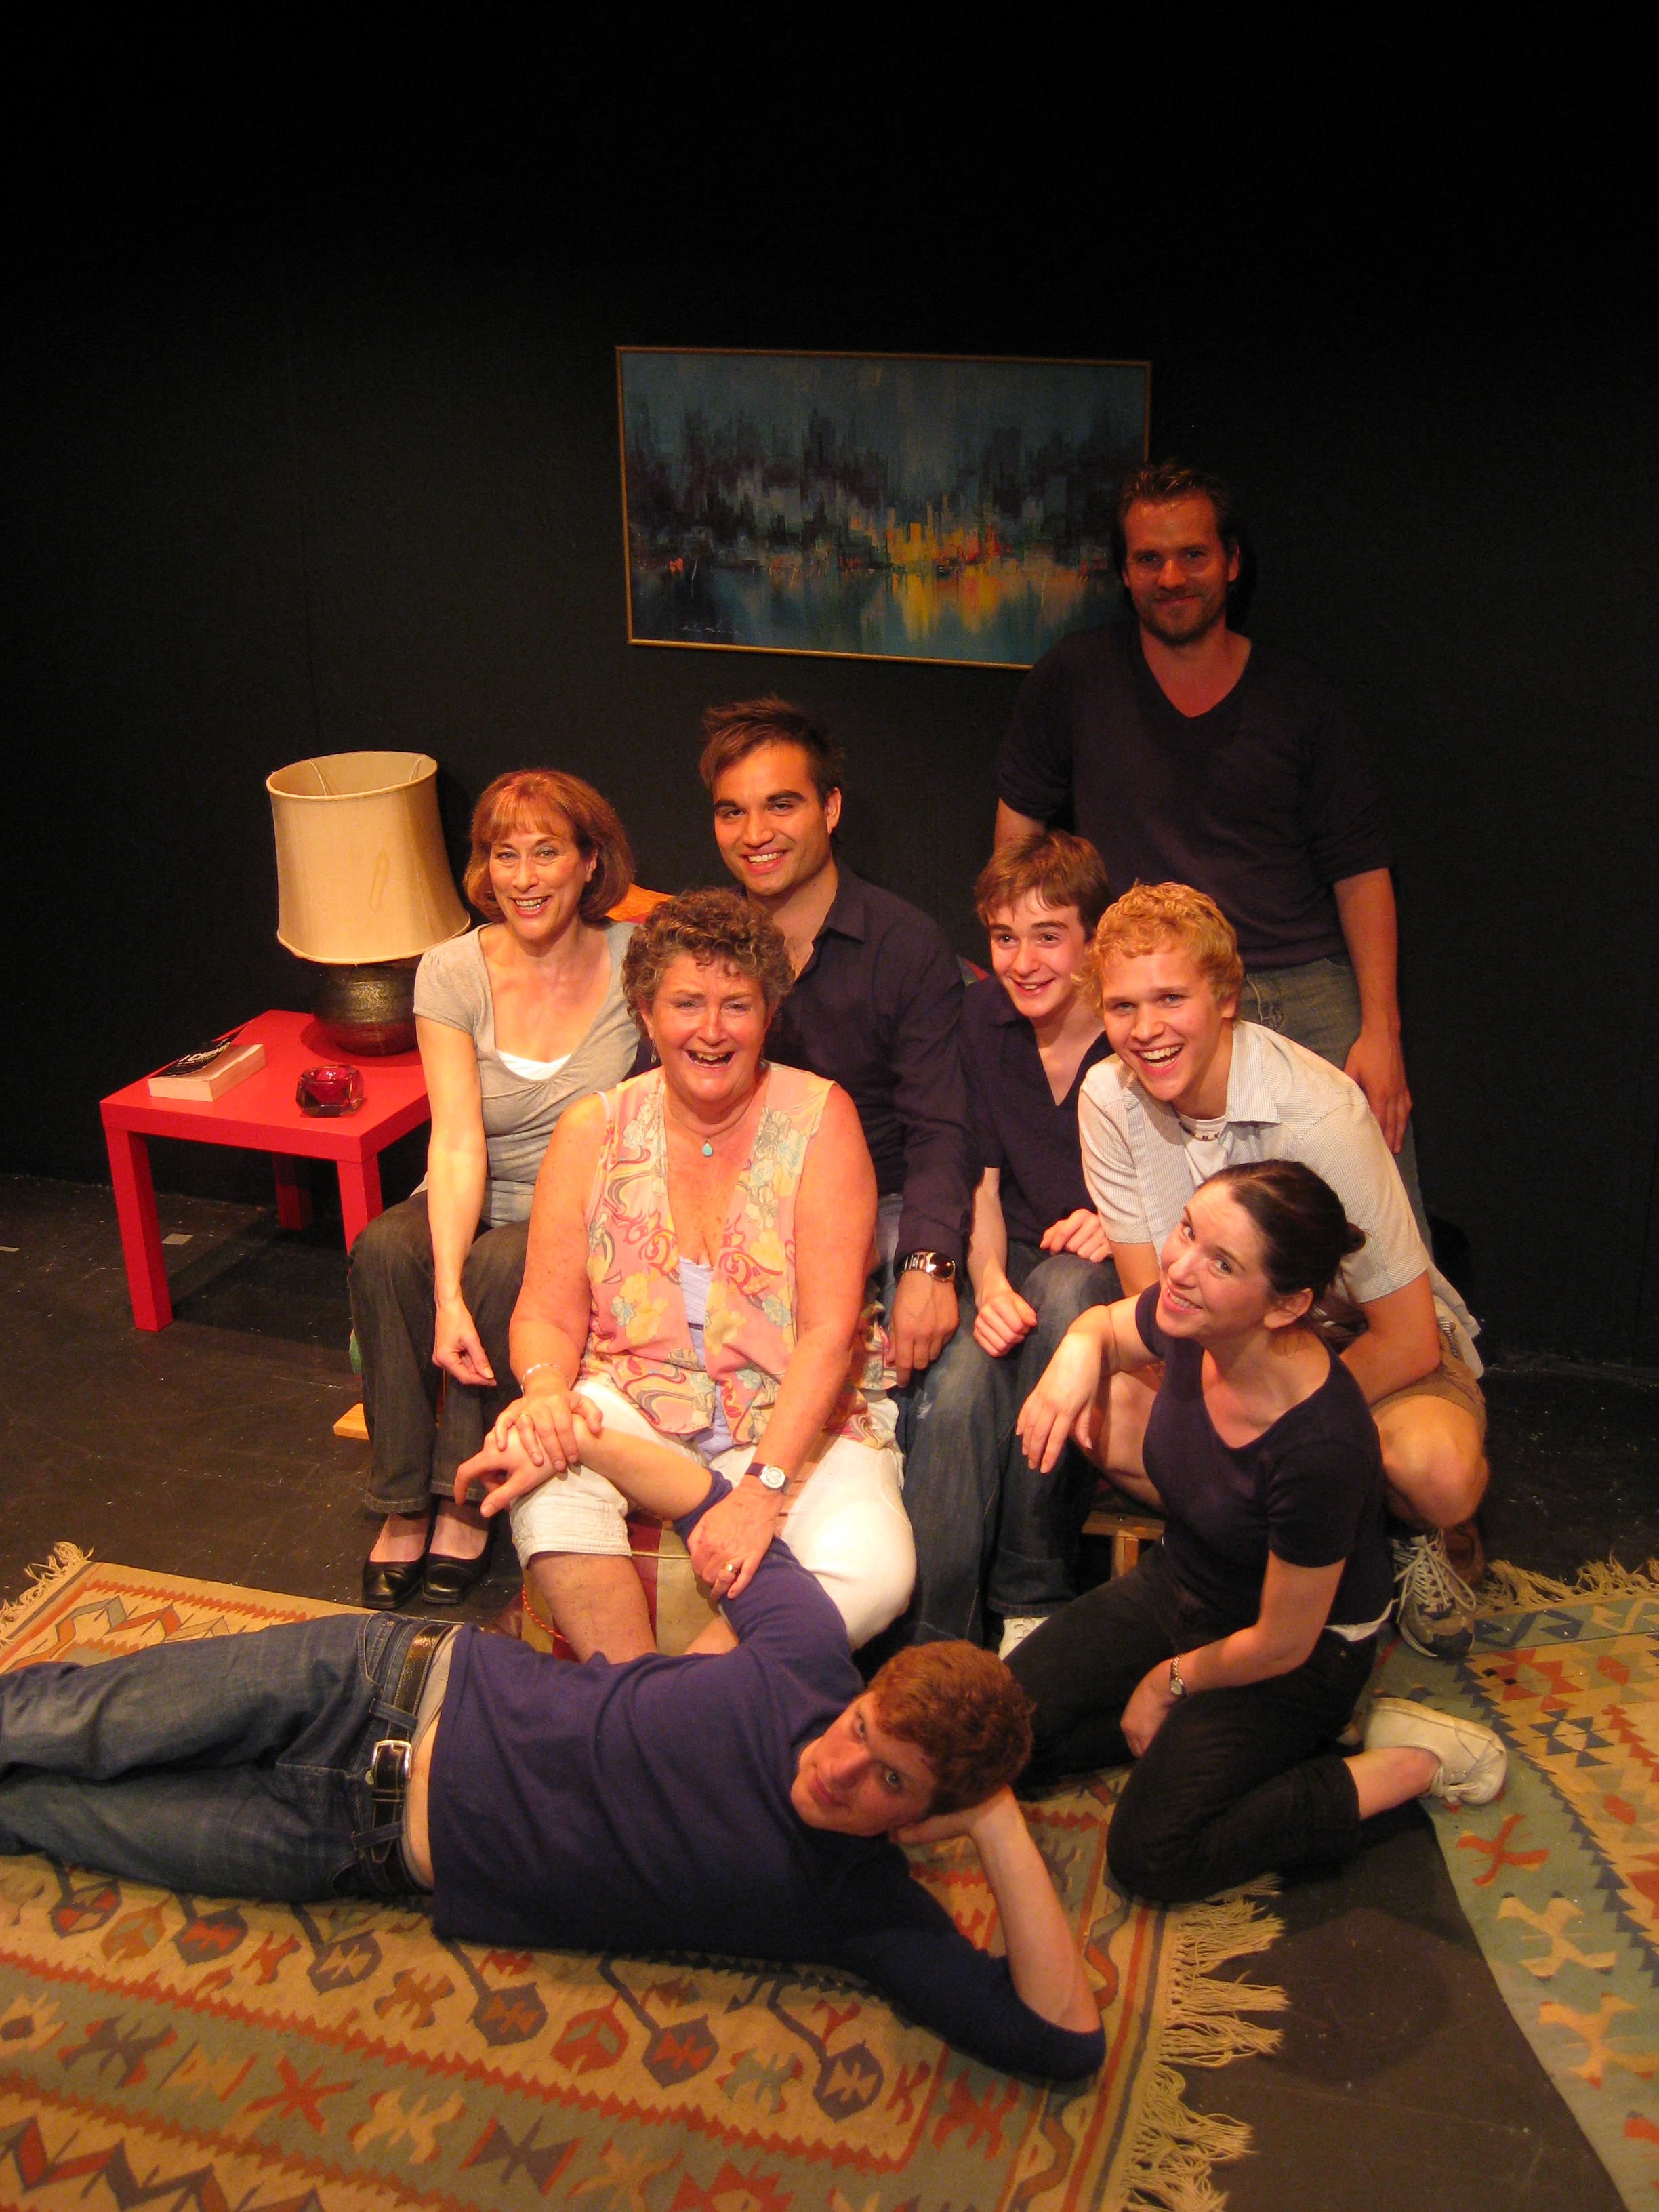 The Cast and Crew of Torch Song Trilogy (2009)